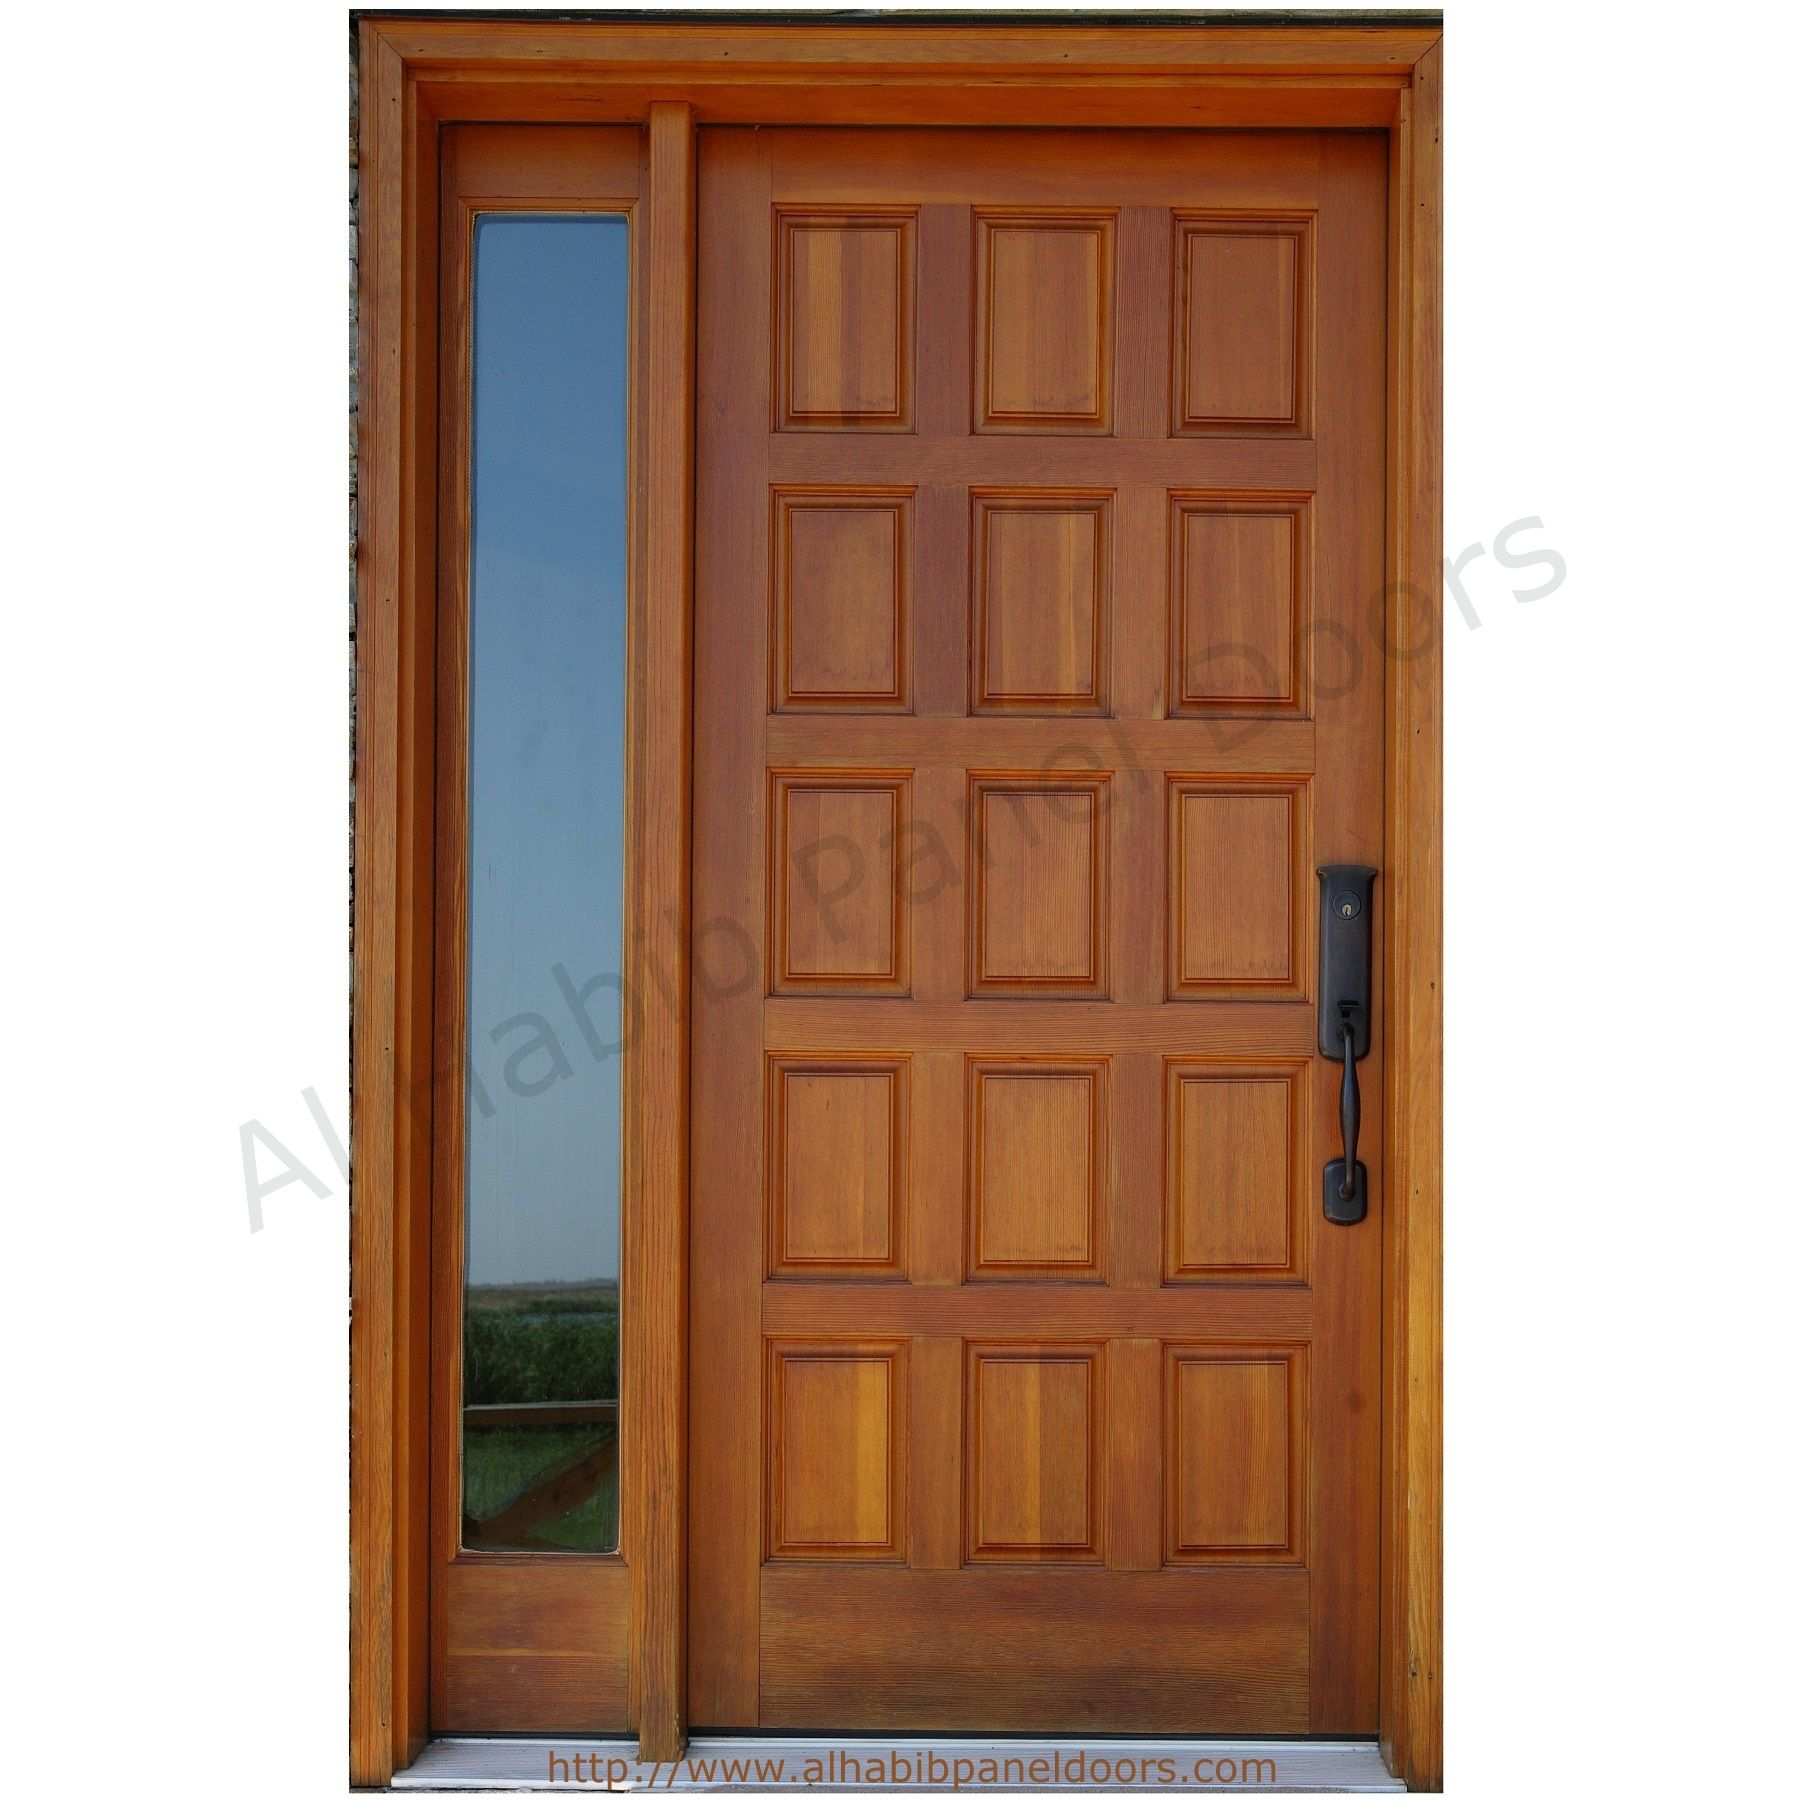 1800 #7F4221 Hpd427 Solid Wood Doors Al Habib Panel Doors Solid Wood Door  pic Unfinished Wood Entry Doors 42111800